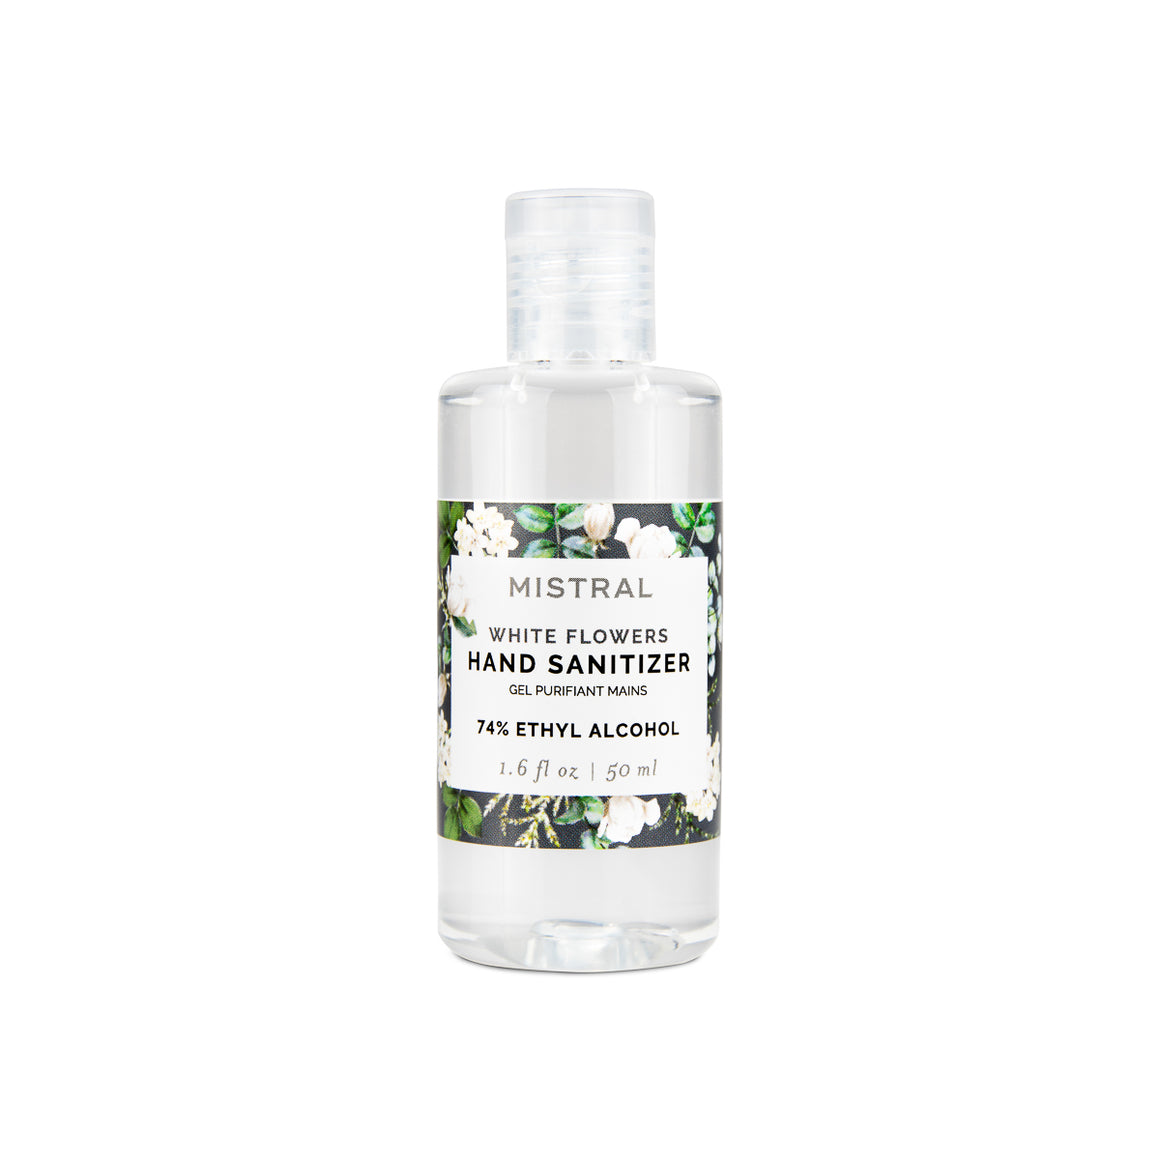 WHITE FLOWERS HAND SANITIZER